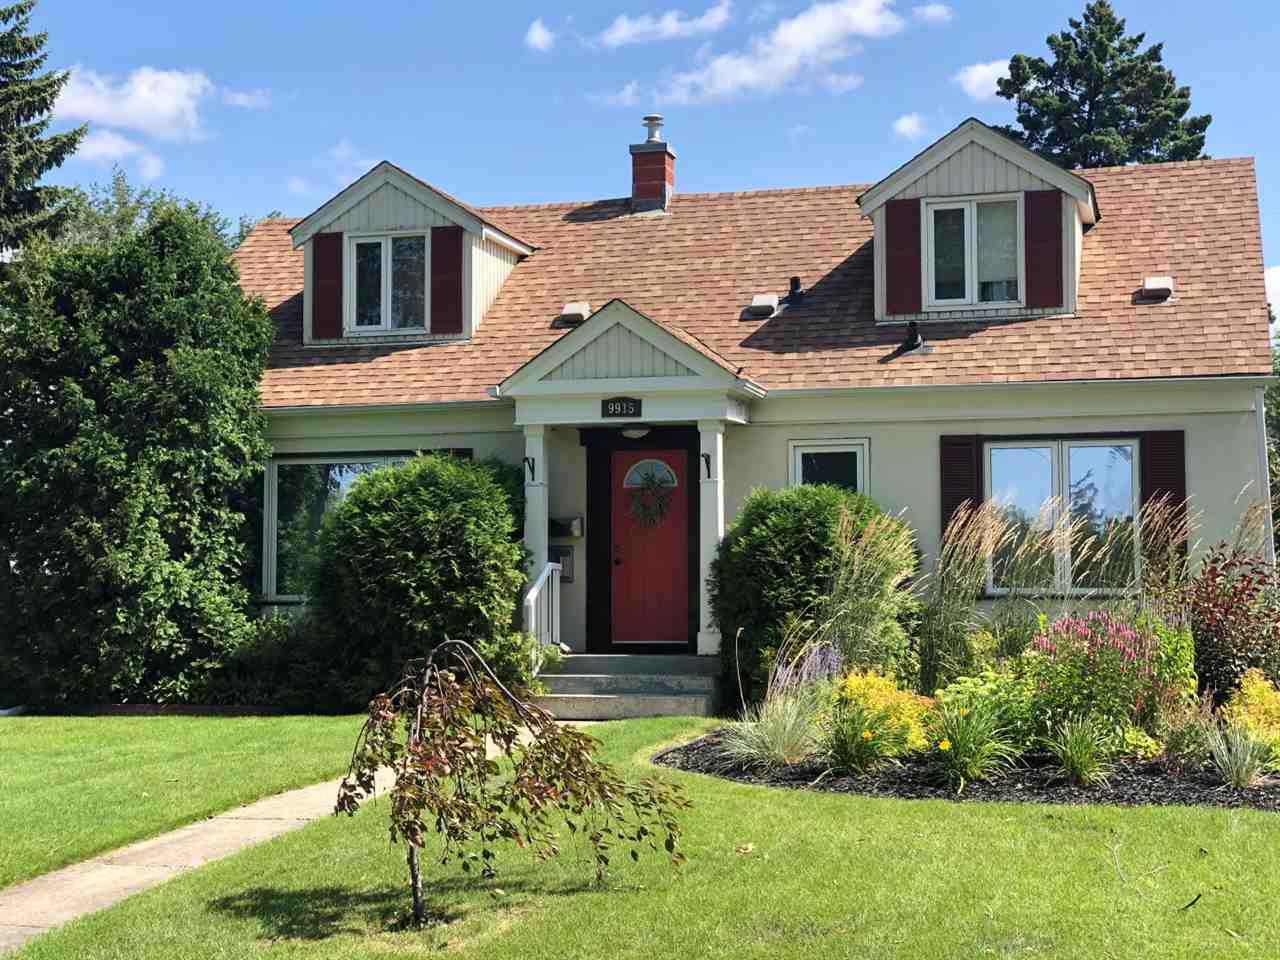 This beautiful character home is located in the sought after community of Forest Heights, boasting over 2400 sq ft of developed living space on a 15.2 x 33.5 sq meter lot. This home has upgraded newer maple kitchen, bathrooms, windows, shingles, 100 amp electrical and many more. On the main floor you will find the living room with corner gas fireplace, dining room, kitchen, 2 bedrooms and a 4 pc bath. The loft area offers a large bedroom c/w walk-in closet, second bedroom and a 2 pc bath. The basement is fully finished featuring a rec room, office, workshop, utility room, storage and laundry room. This gorgeous home offers an amazing view of the downtown and is located close to schools, within 2 blocks of the river valley, 10 minutes to downtown and the U of A. Single detached garage and a large beautiful backyard complete this home. A real pleasure to show.